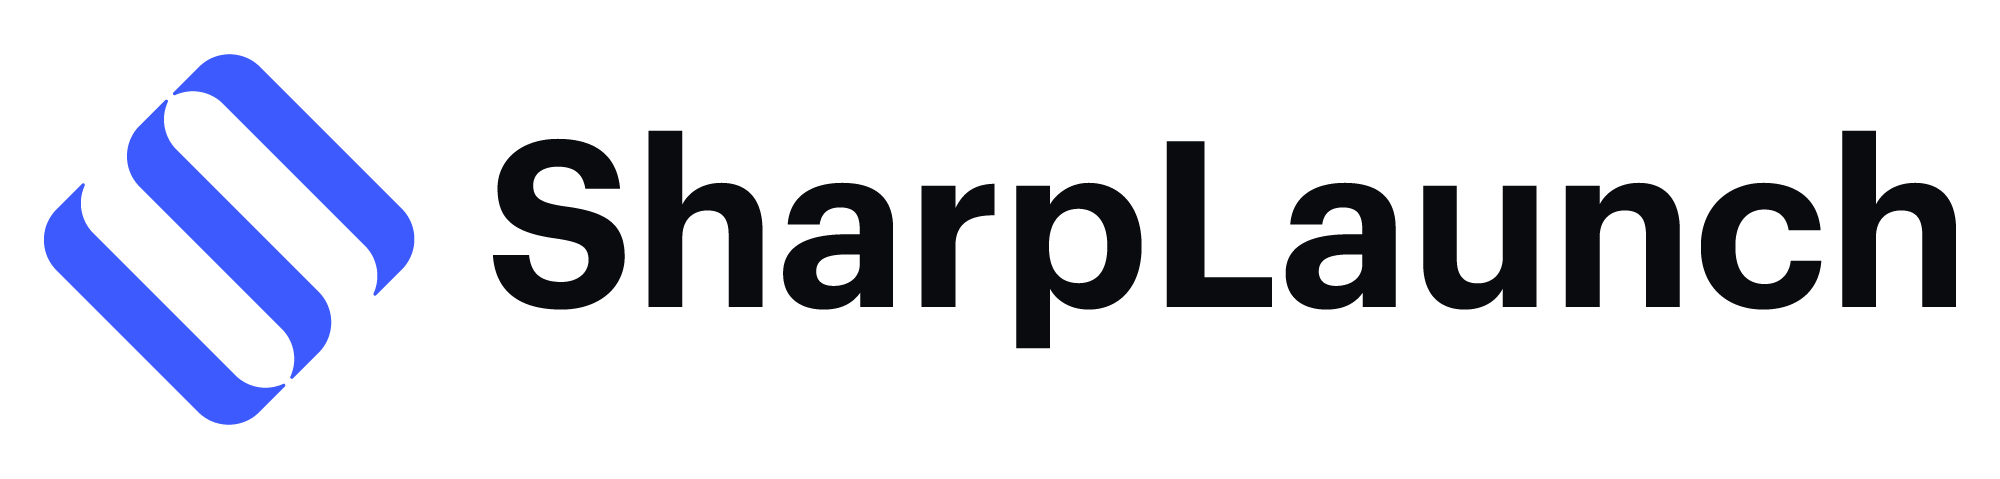 SharpLaunch Logo